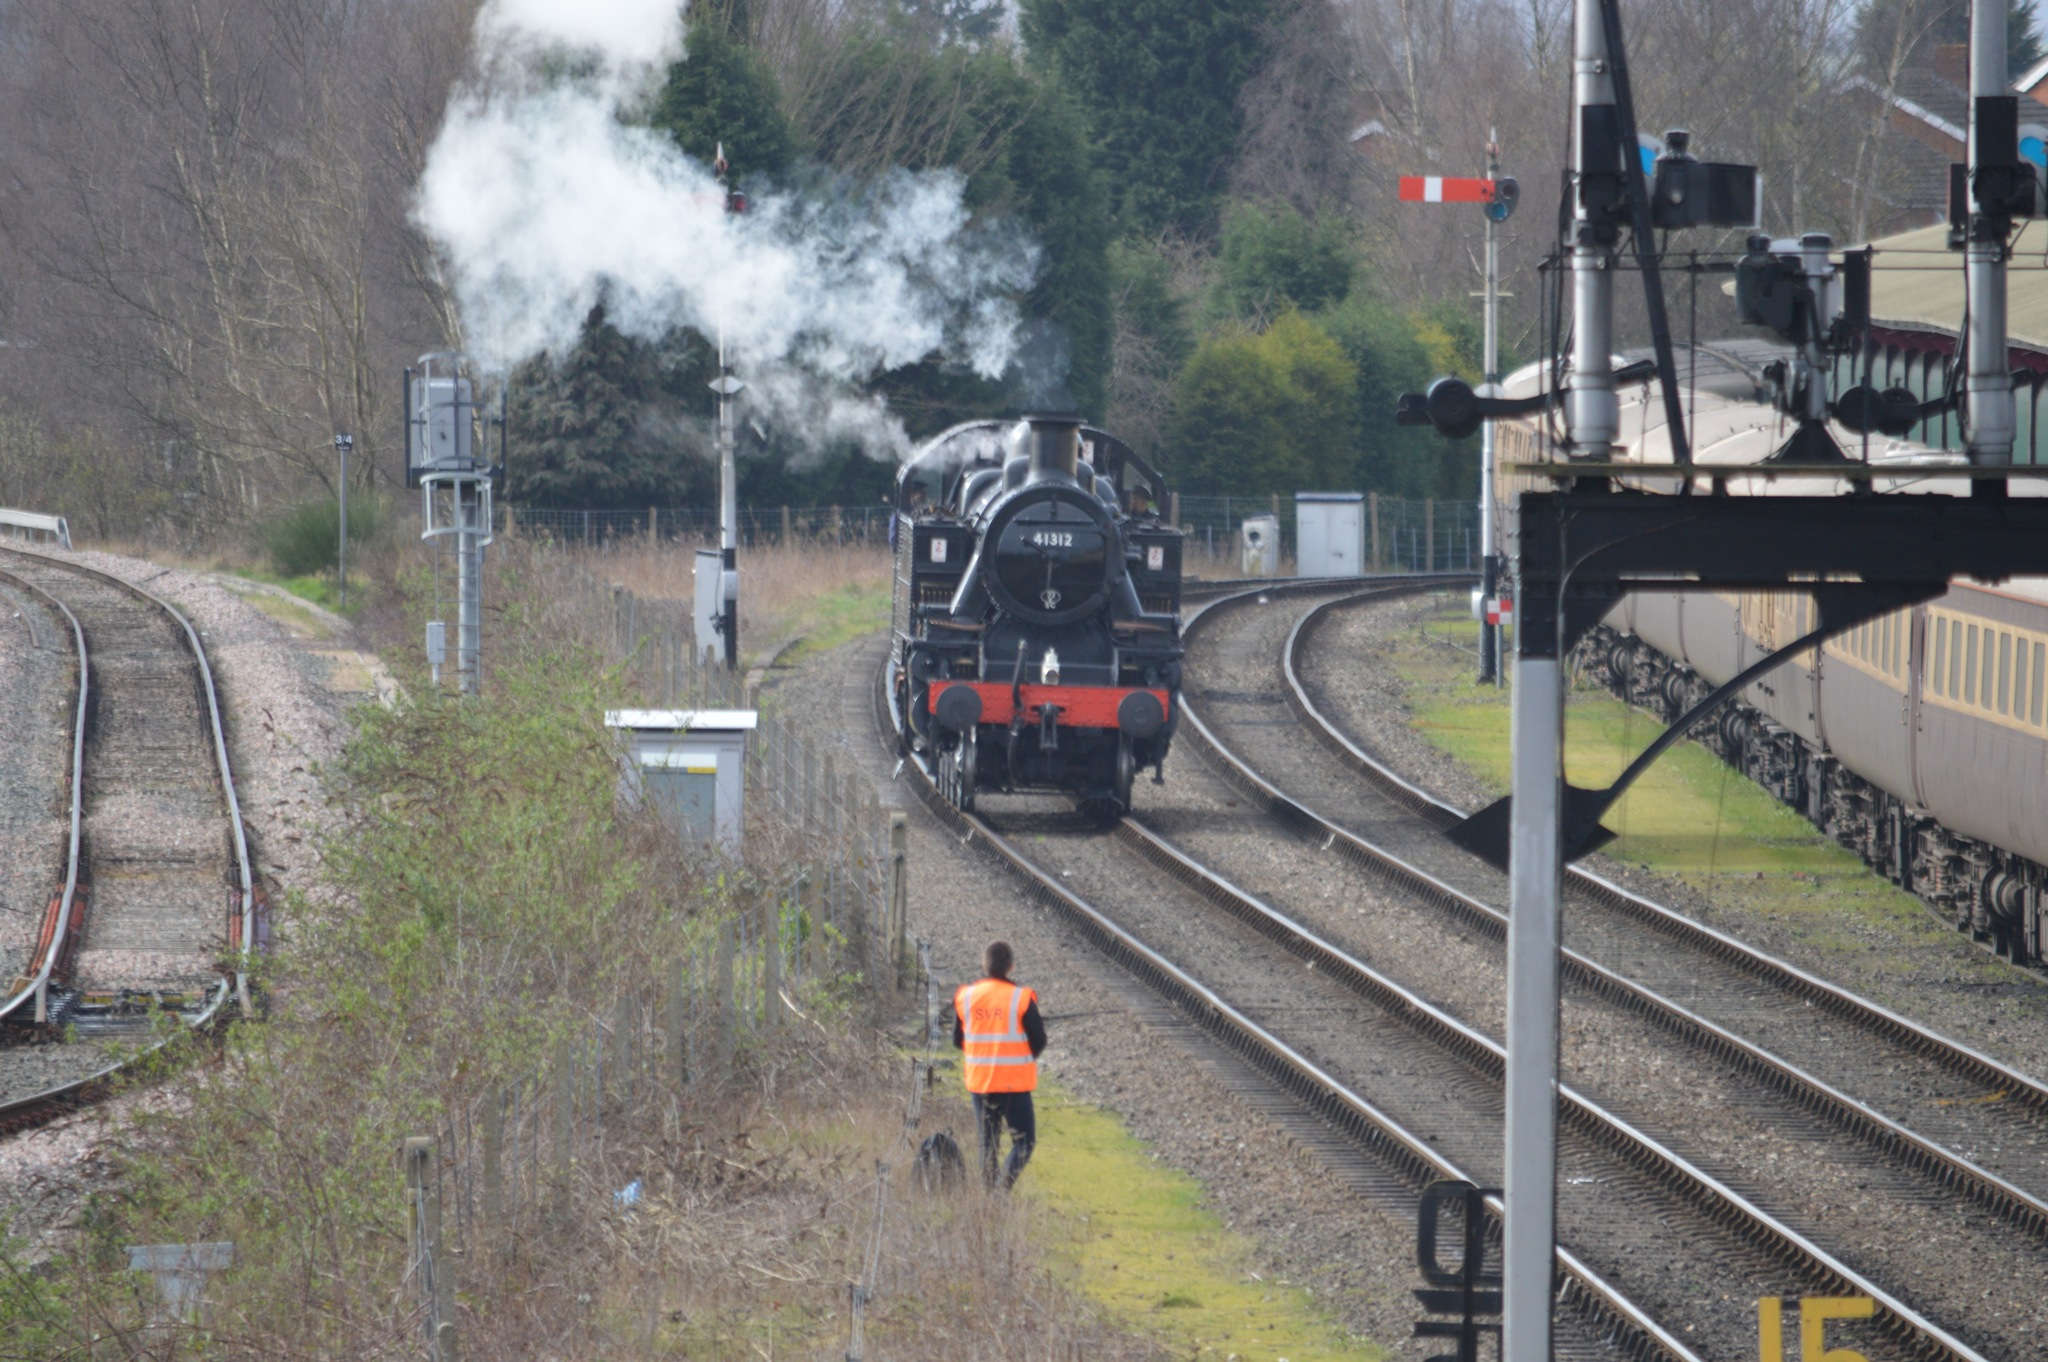 Light Engine  at Kidderminster by adrian.williams.58323